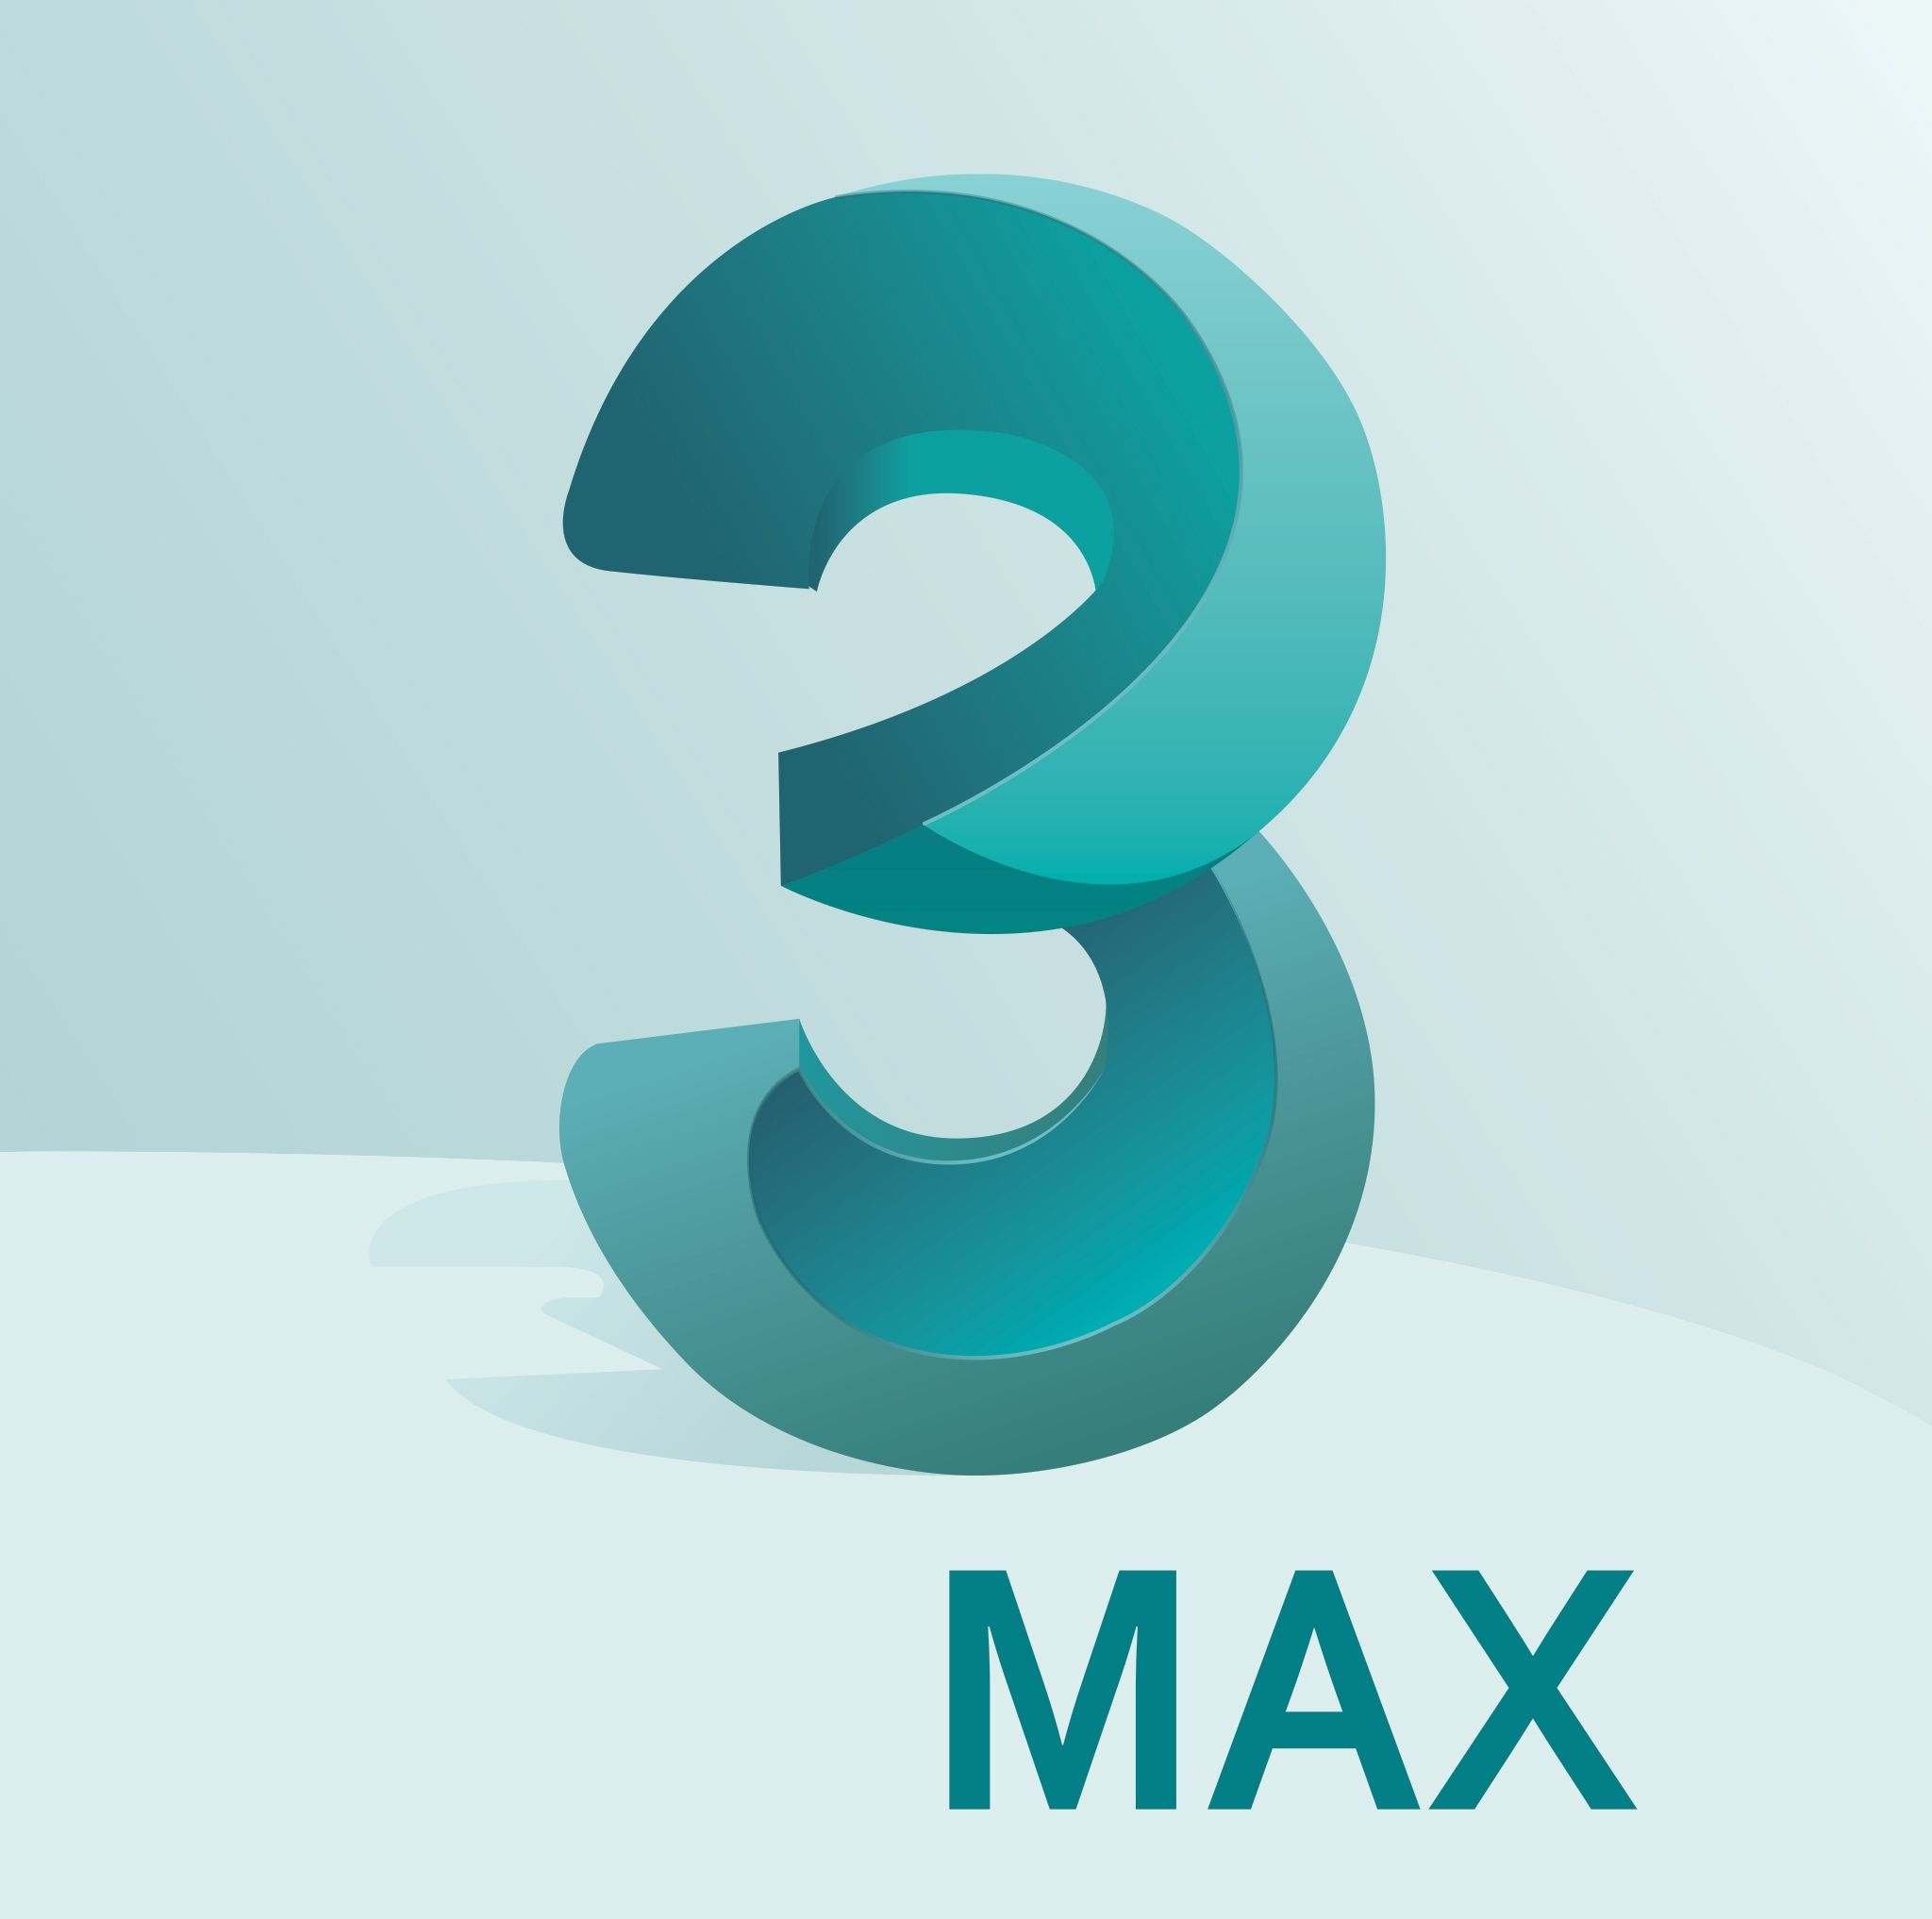 3DS Max Logo (Autodesk) Vector EPS Free Download, Logo ...